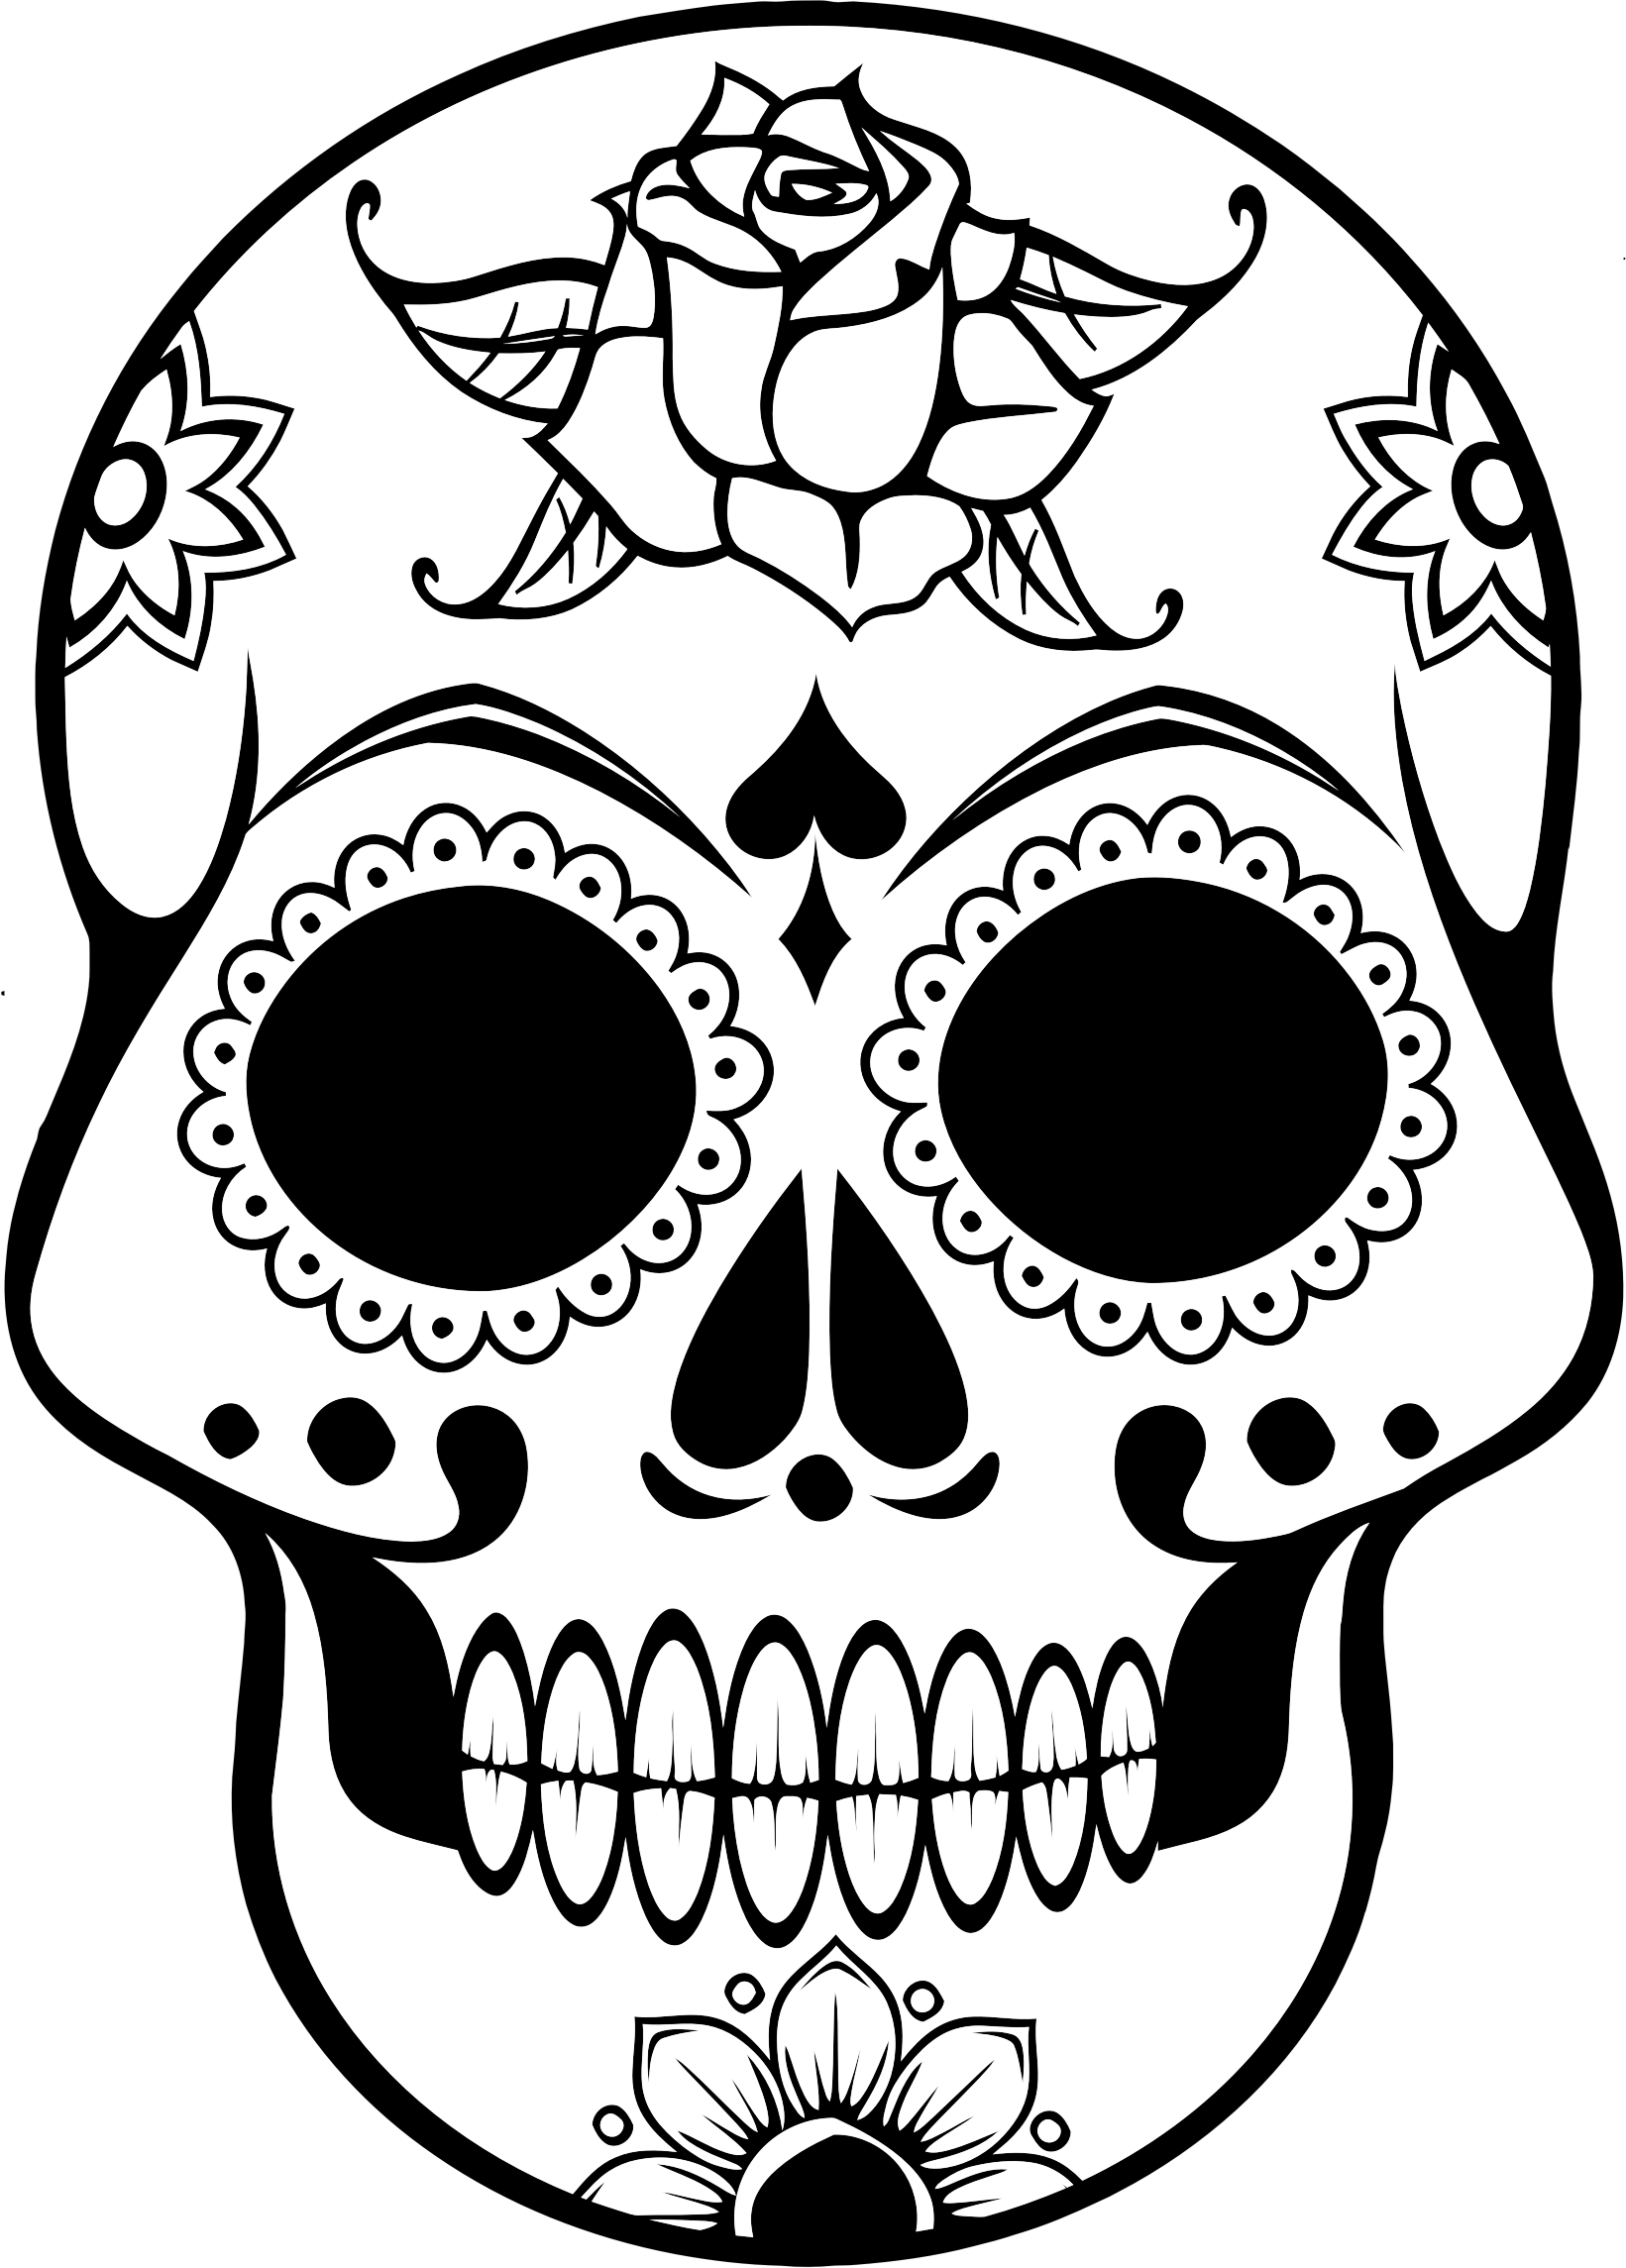 Ornate Skull Lineart by GDJ